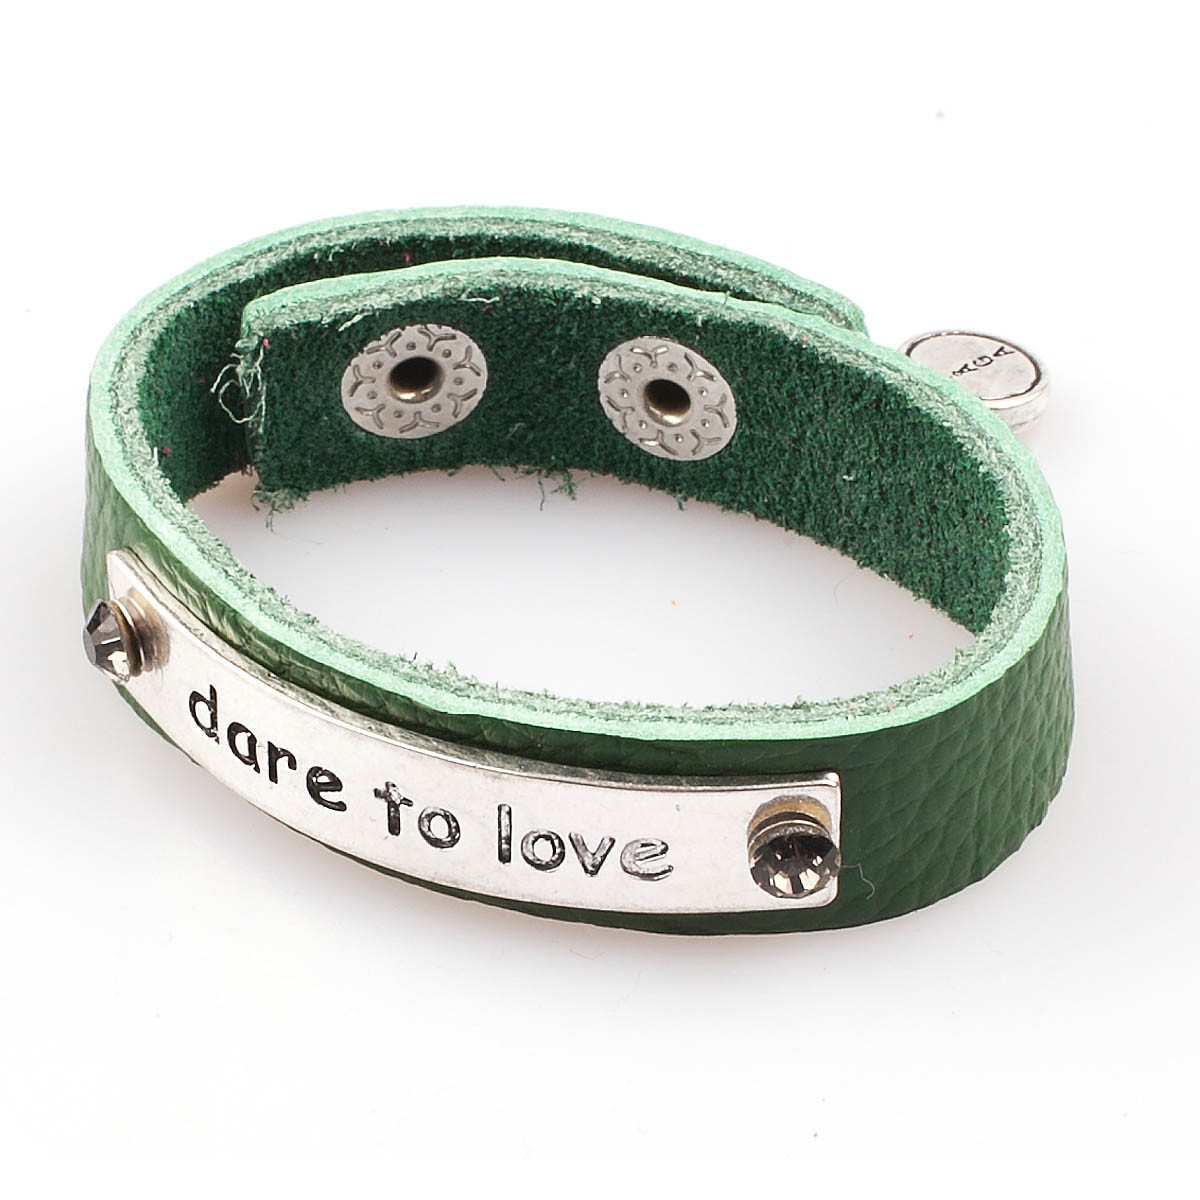 vaga-armband-dare-to-love-gron